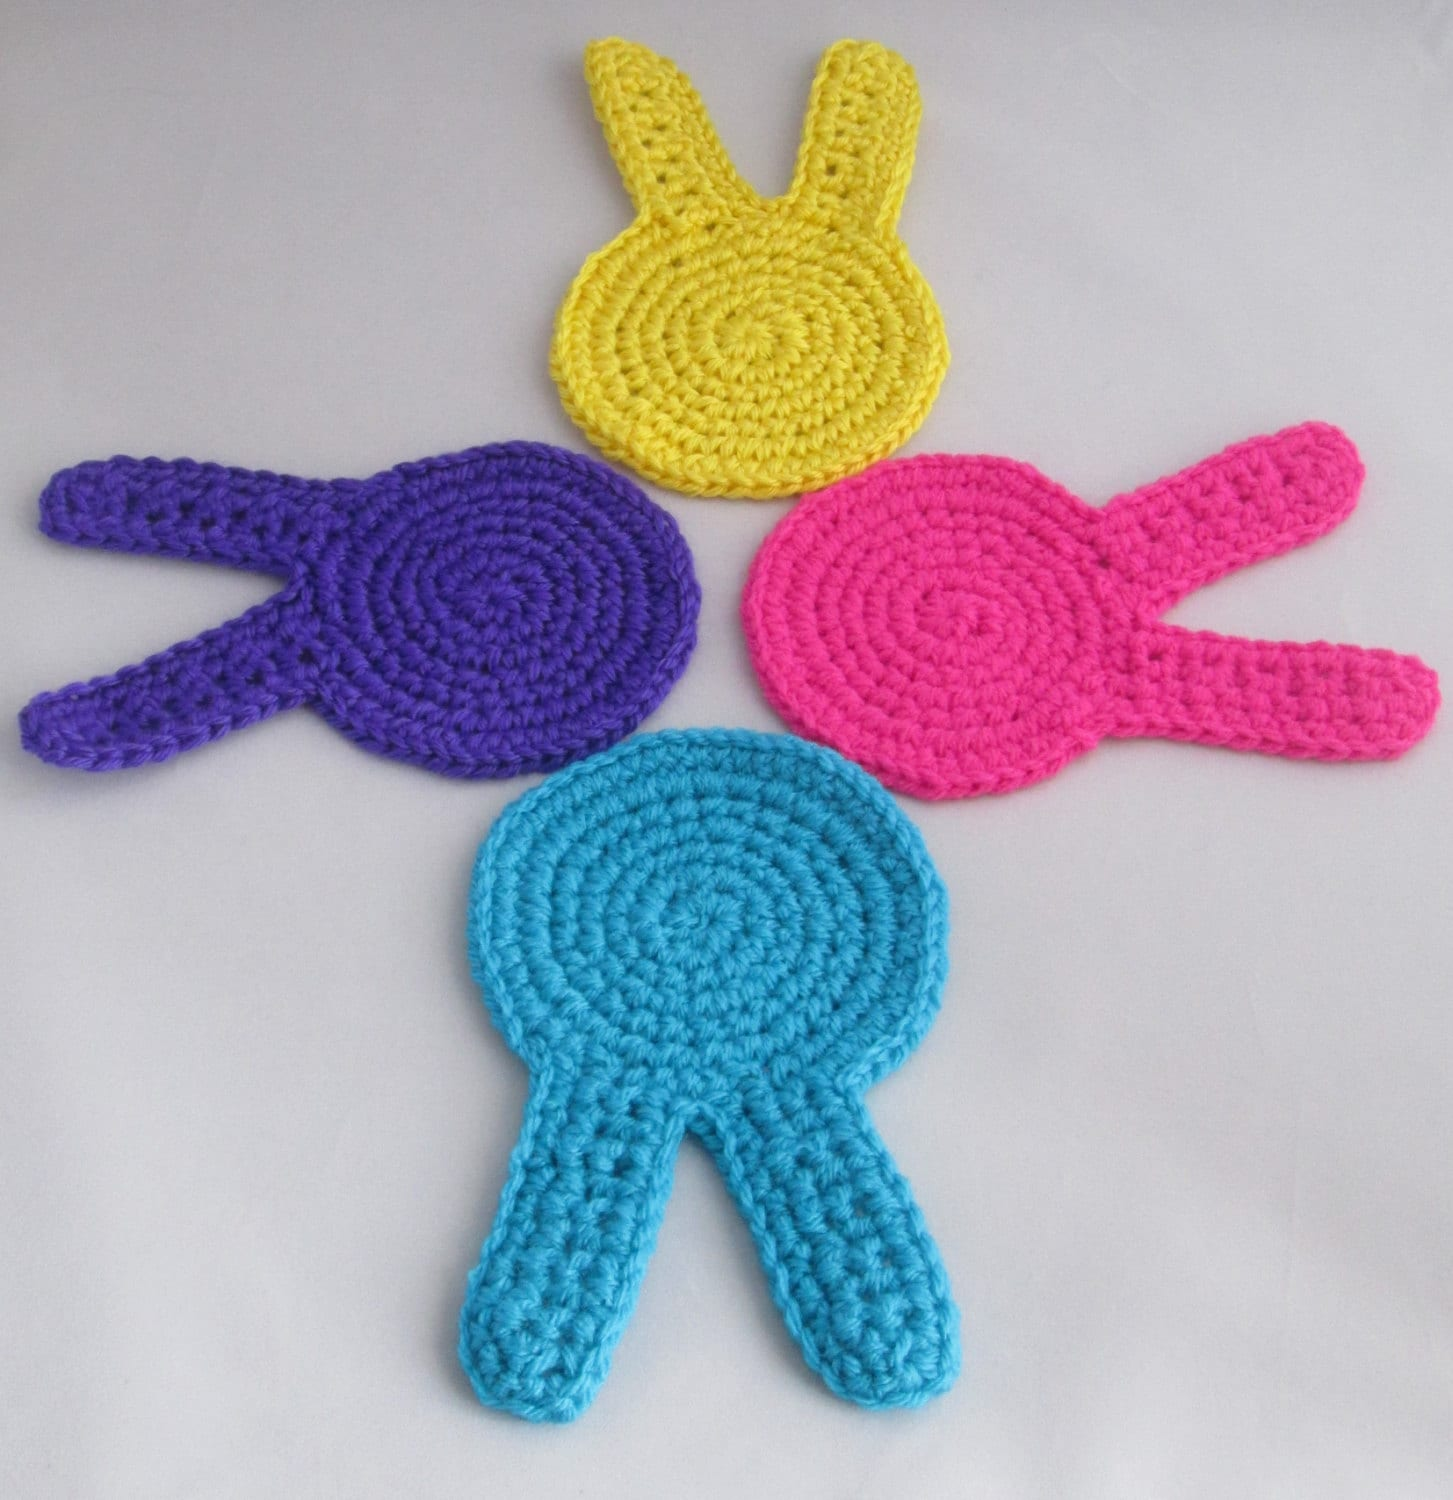 Easter Bunny Handmade Crocheted Coasters/ Easter Decor/Housewares ...